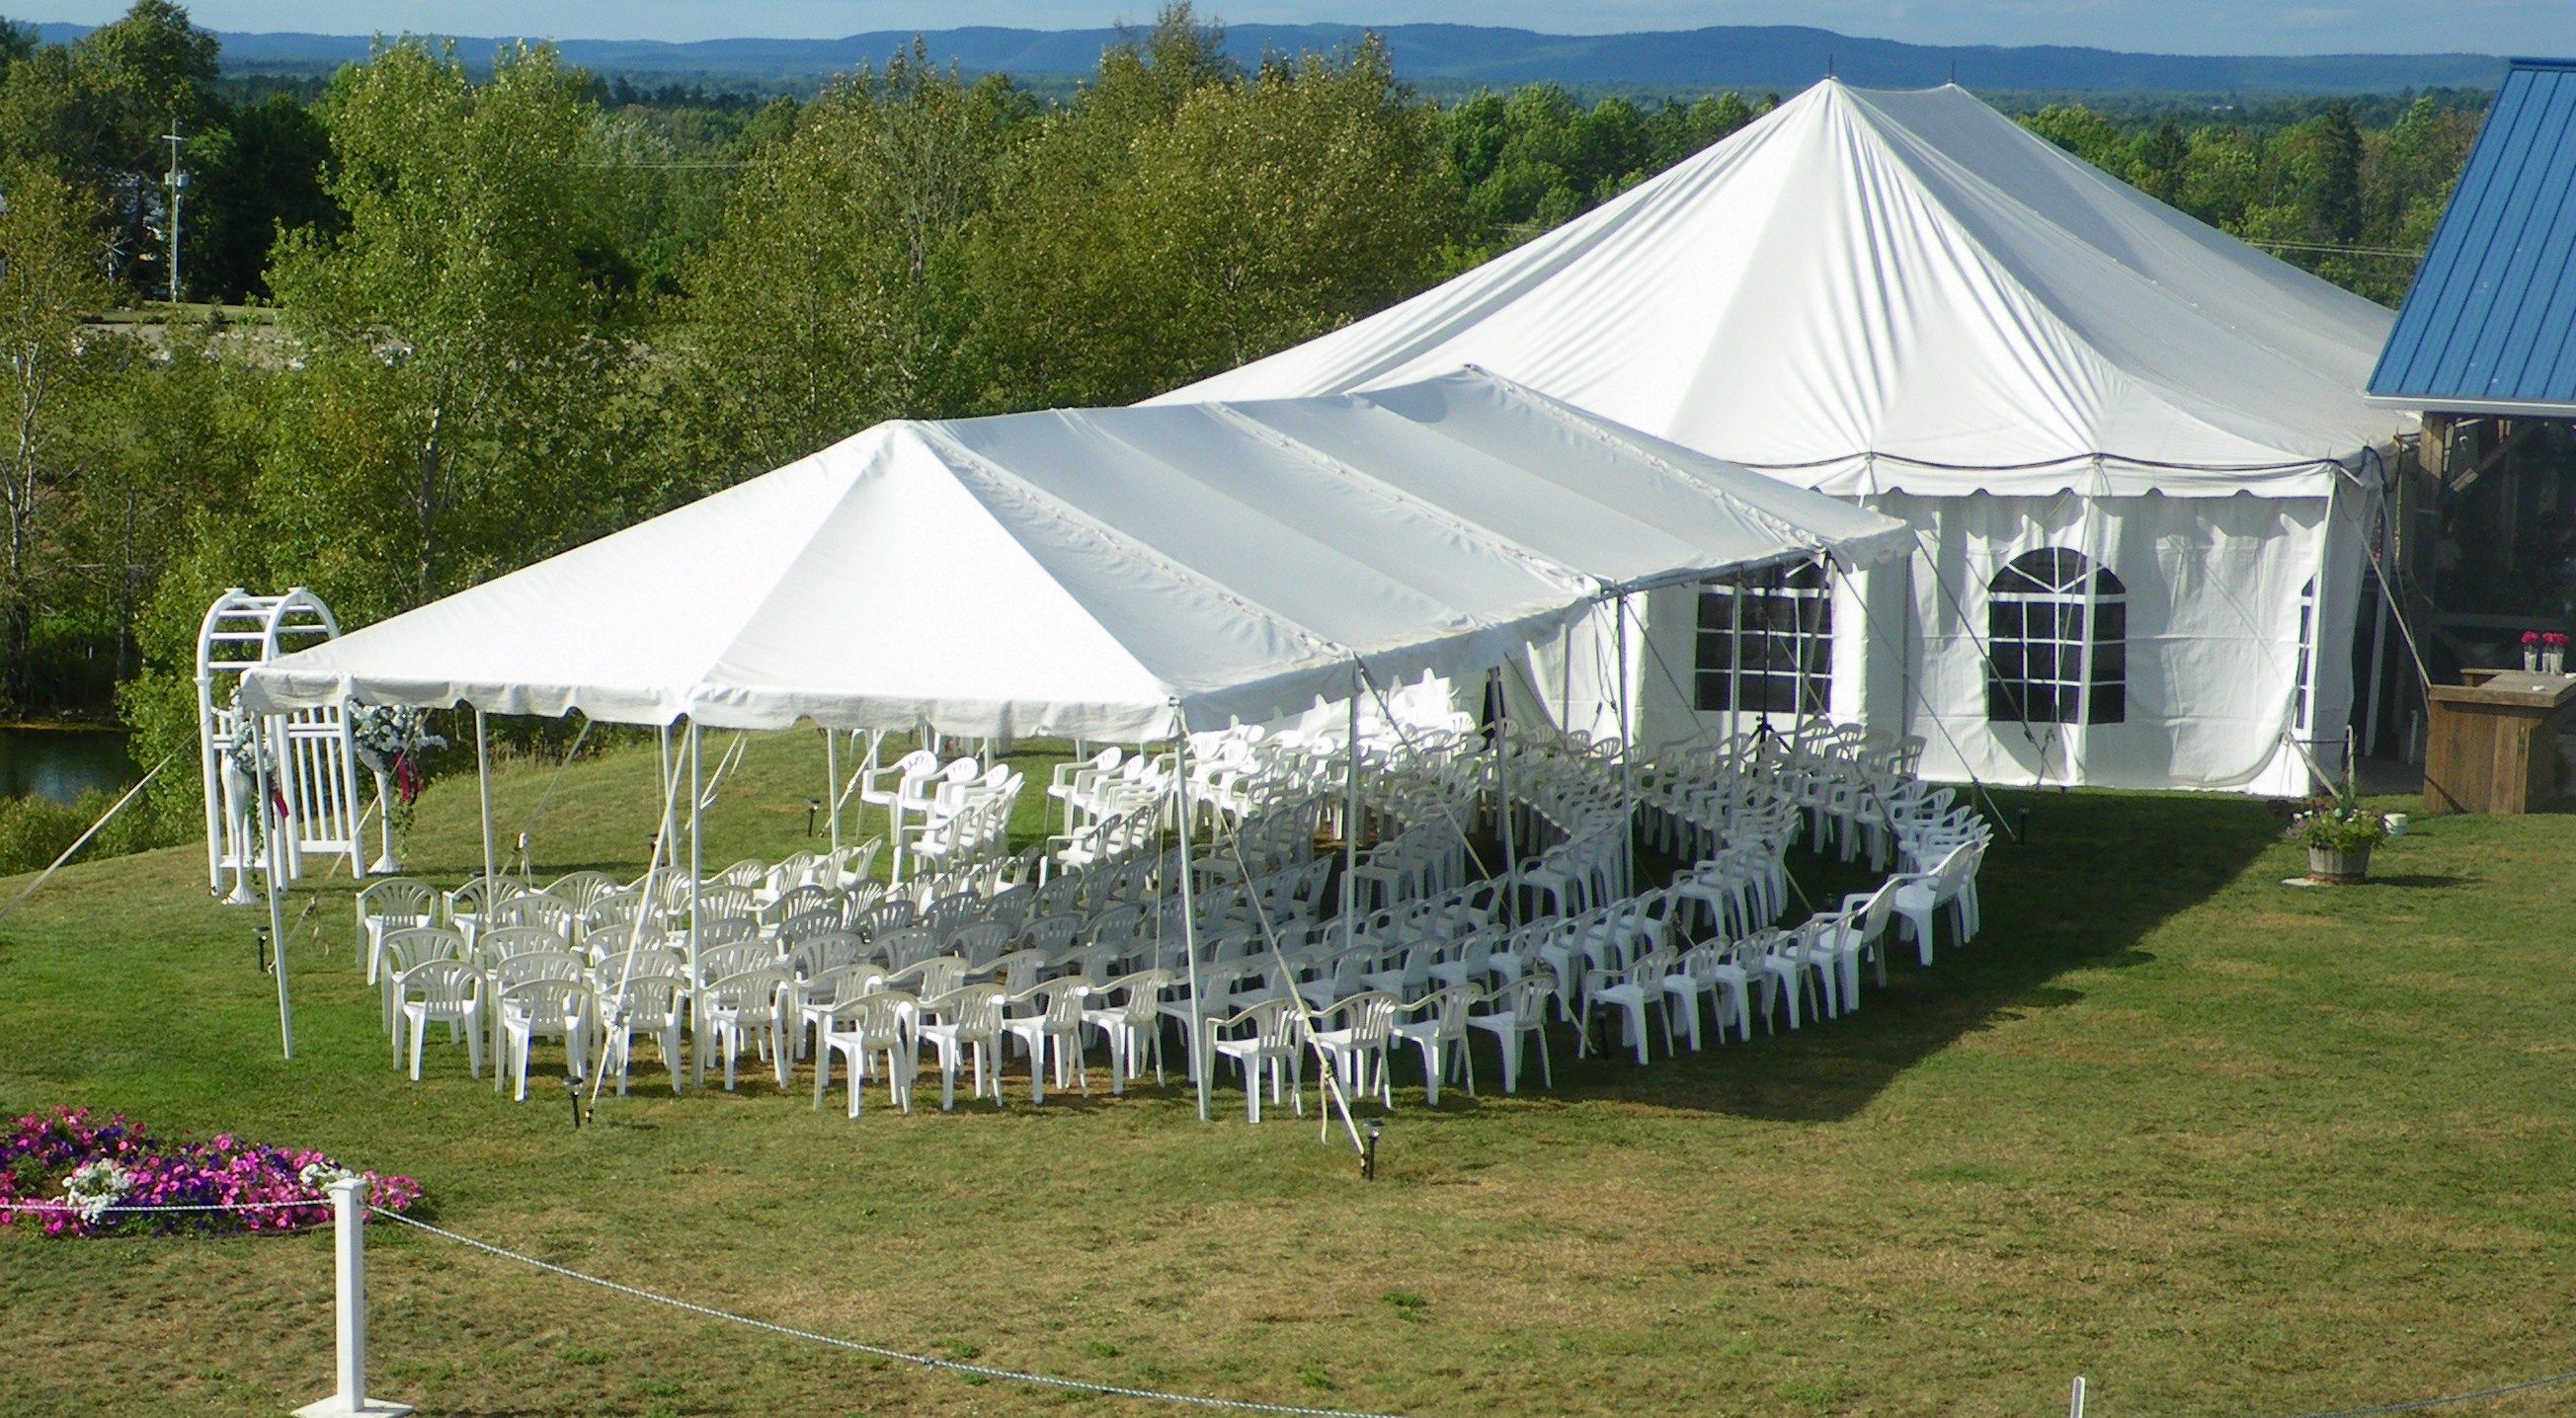 Hugliu0027s has beautiful white garden tents with clear windows for on-site weddings at Hugliu0027s Blueberry Ranch in Pembroke. & Image detail for -beautiful white garden tents with clear windows ...